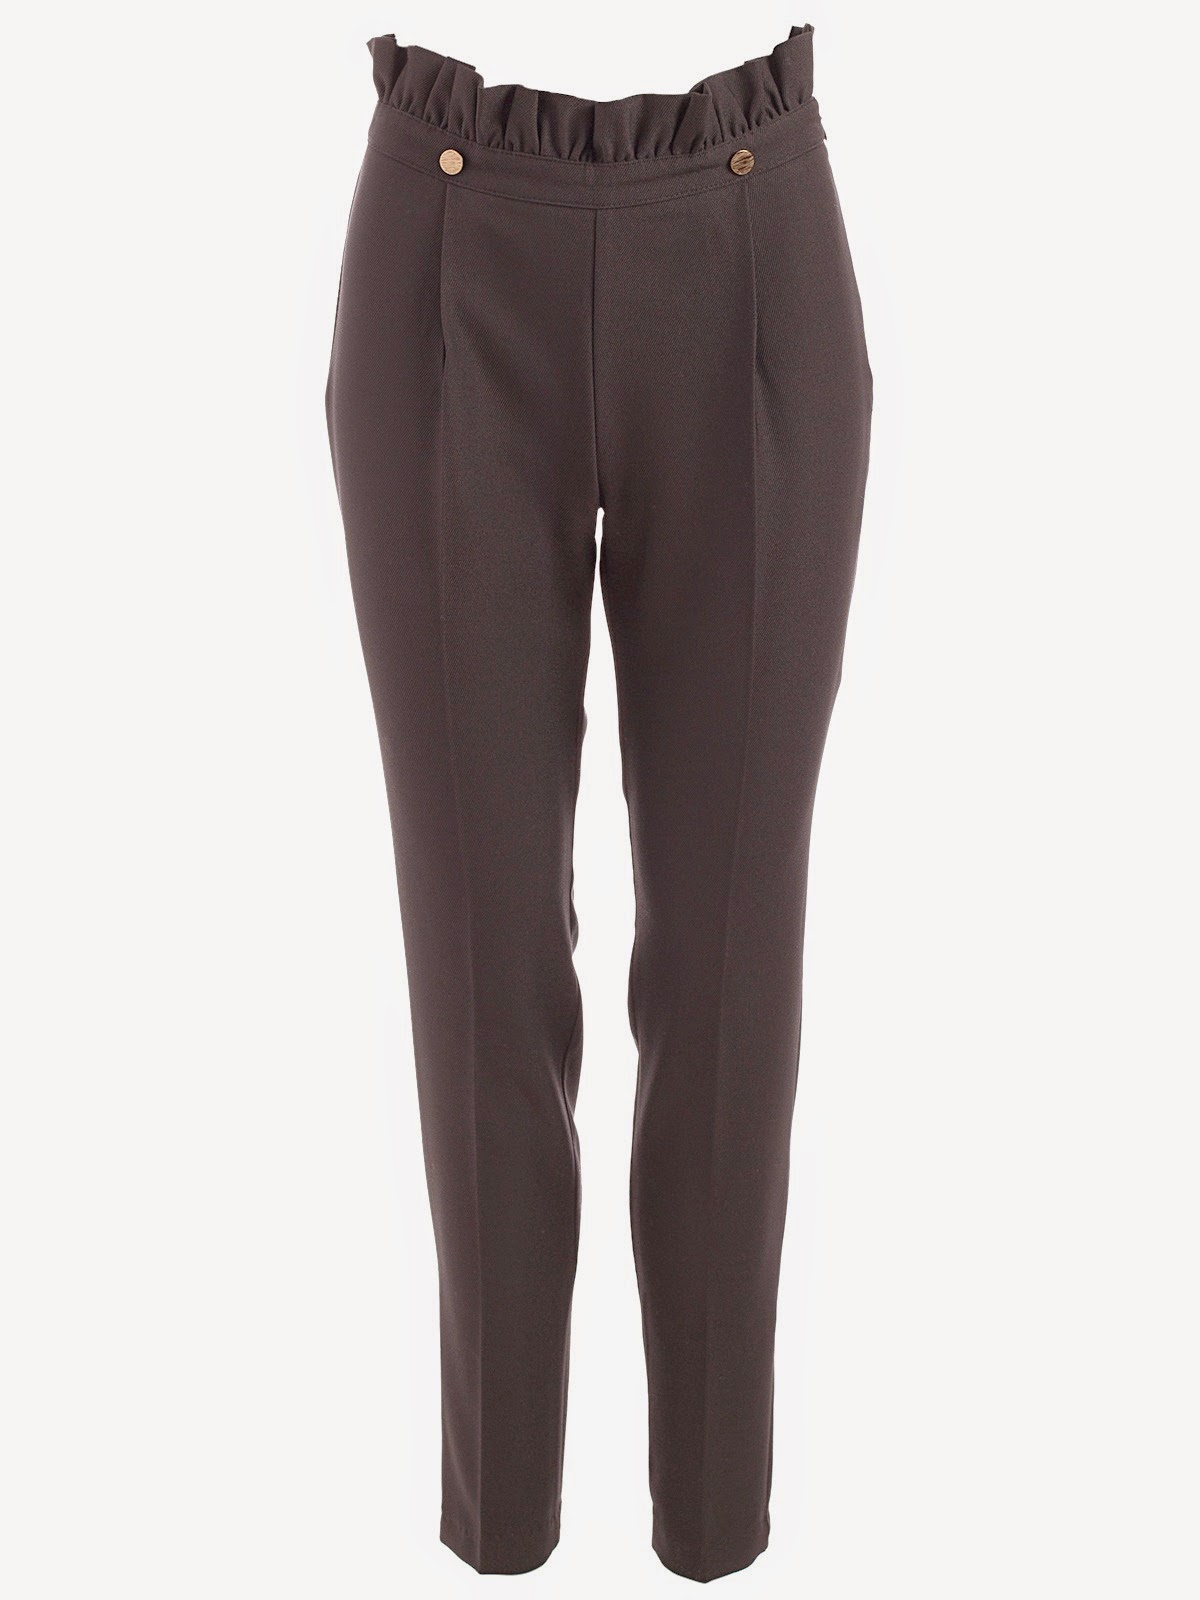 http://www.girissima.com/pt/catalogue/petal-high-waisted-pleated-black-trousers_8242/